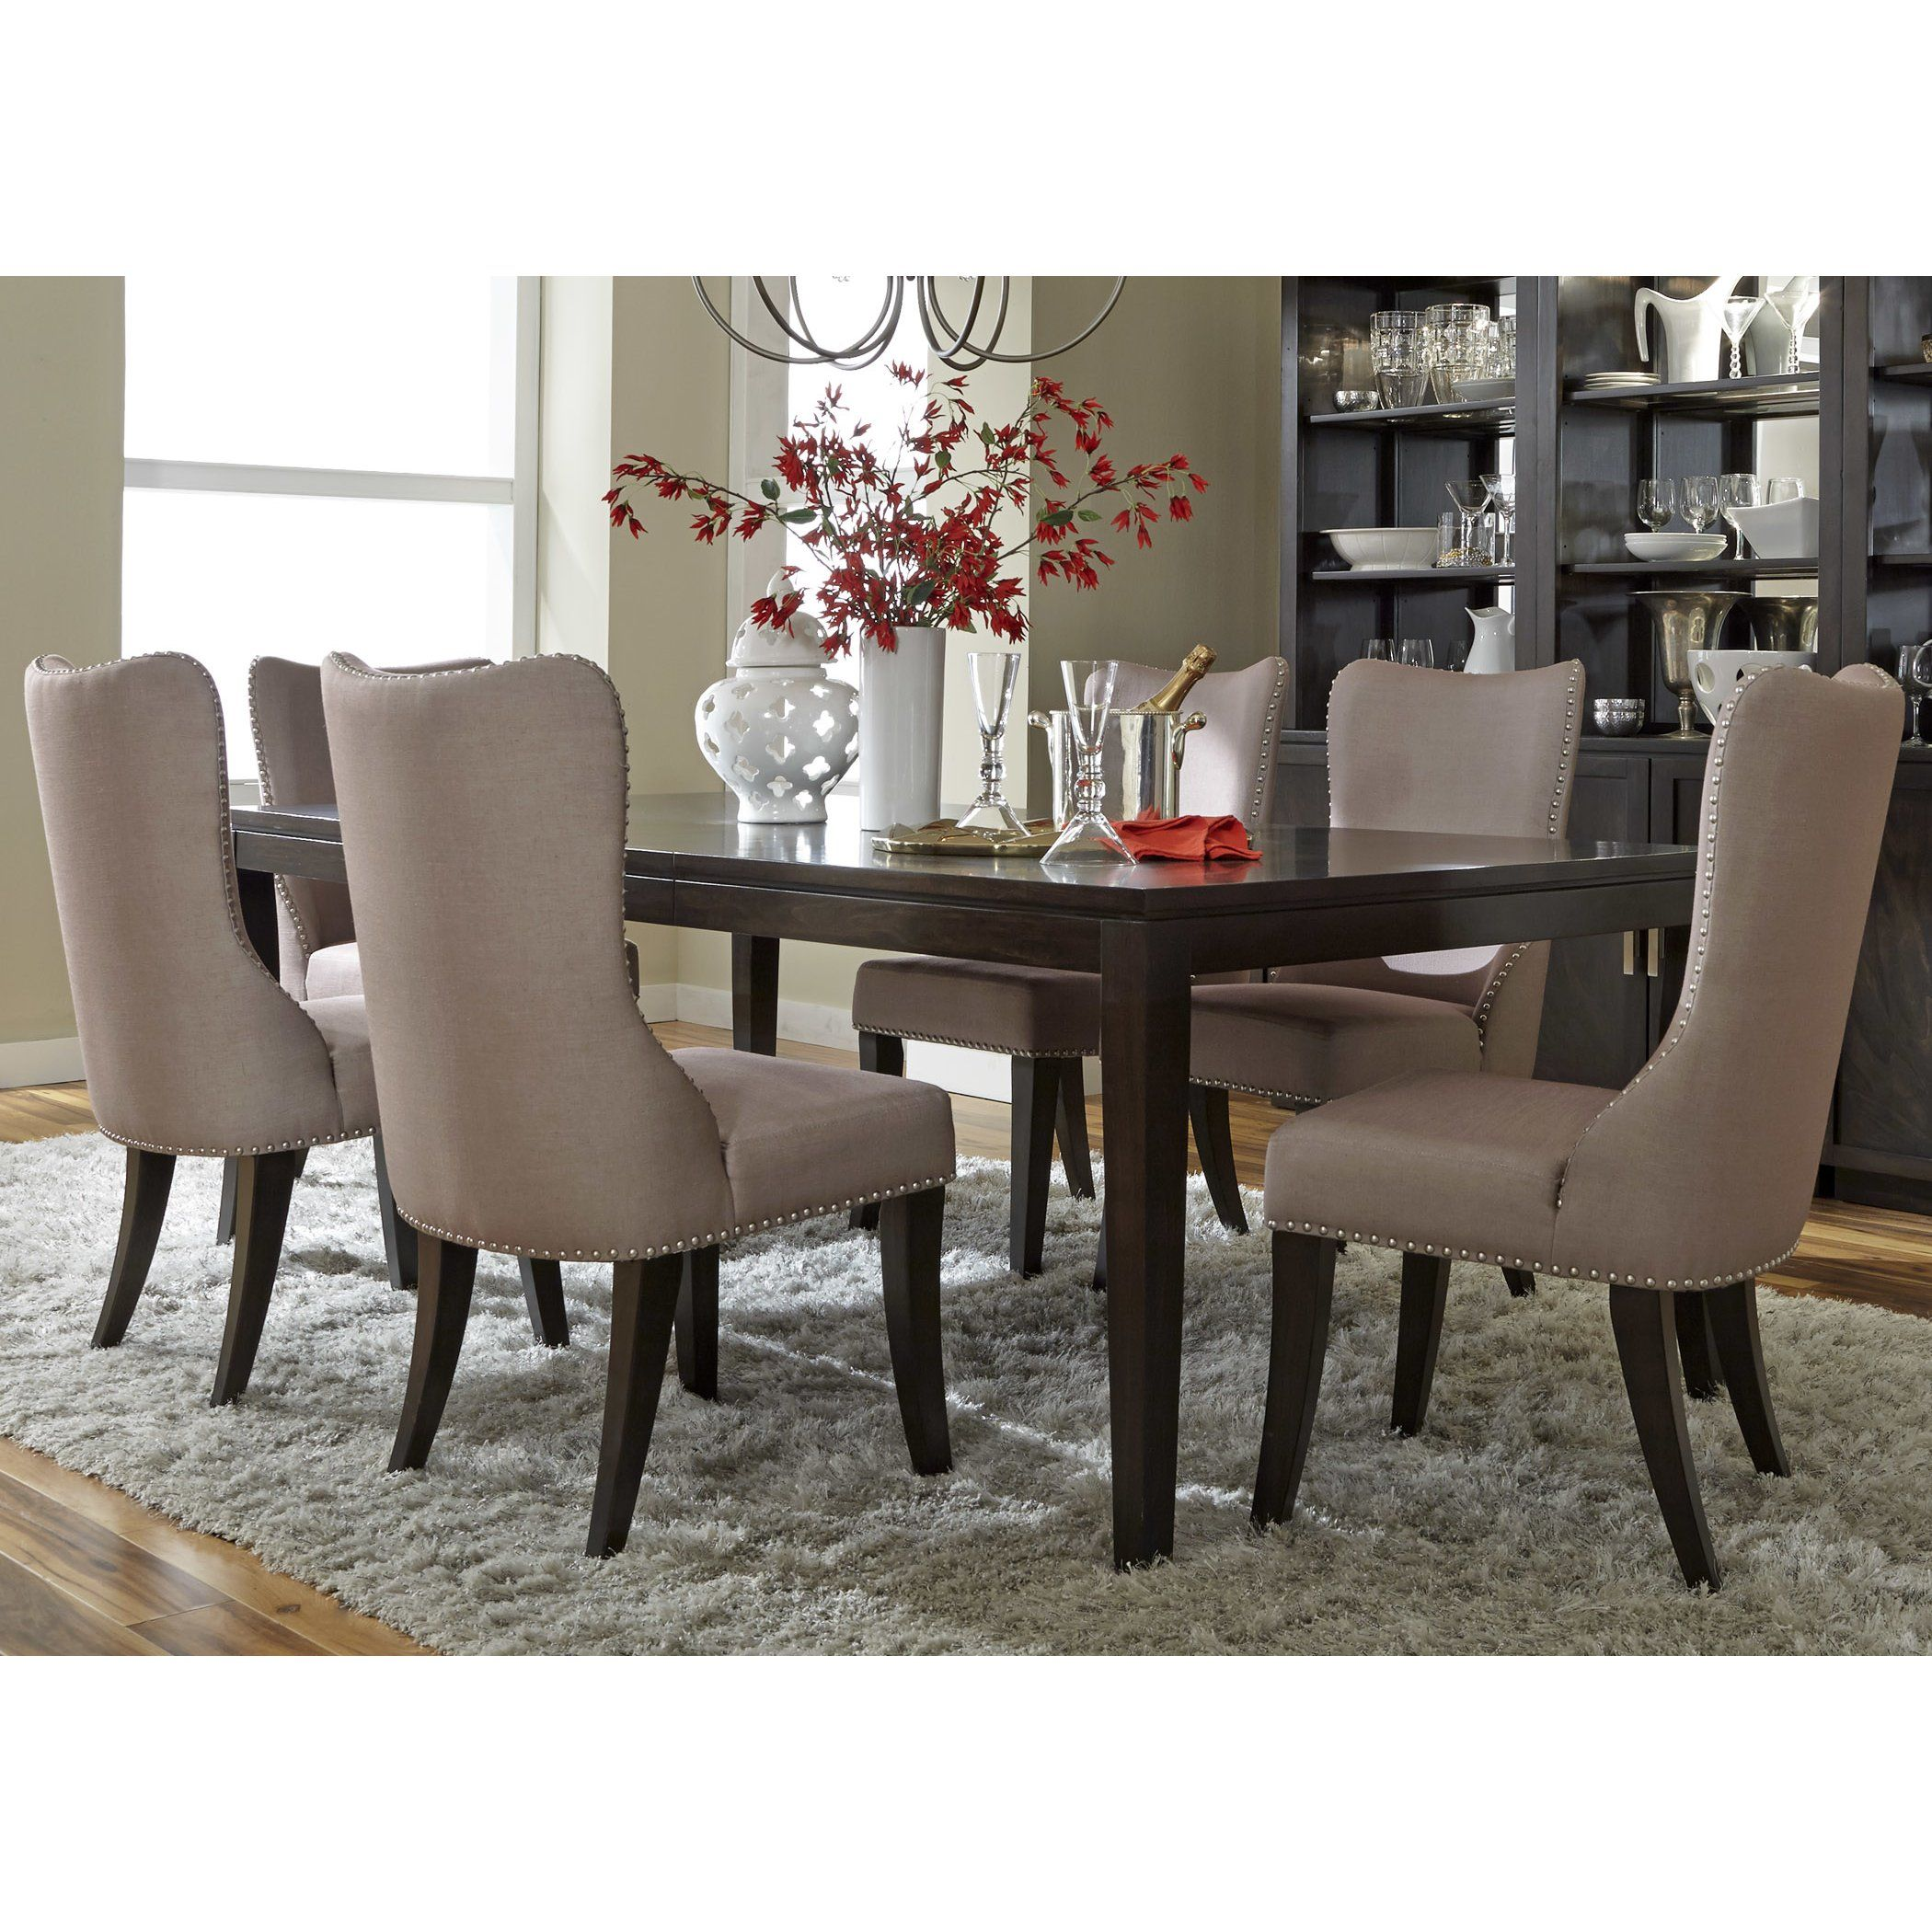 House of Hampton Caribou 7 Piece Dining Set | dine | Pinterest ...